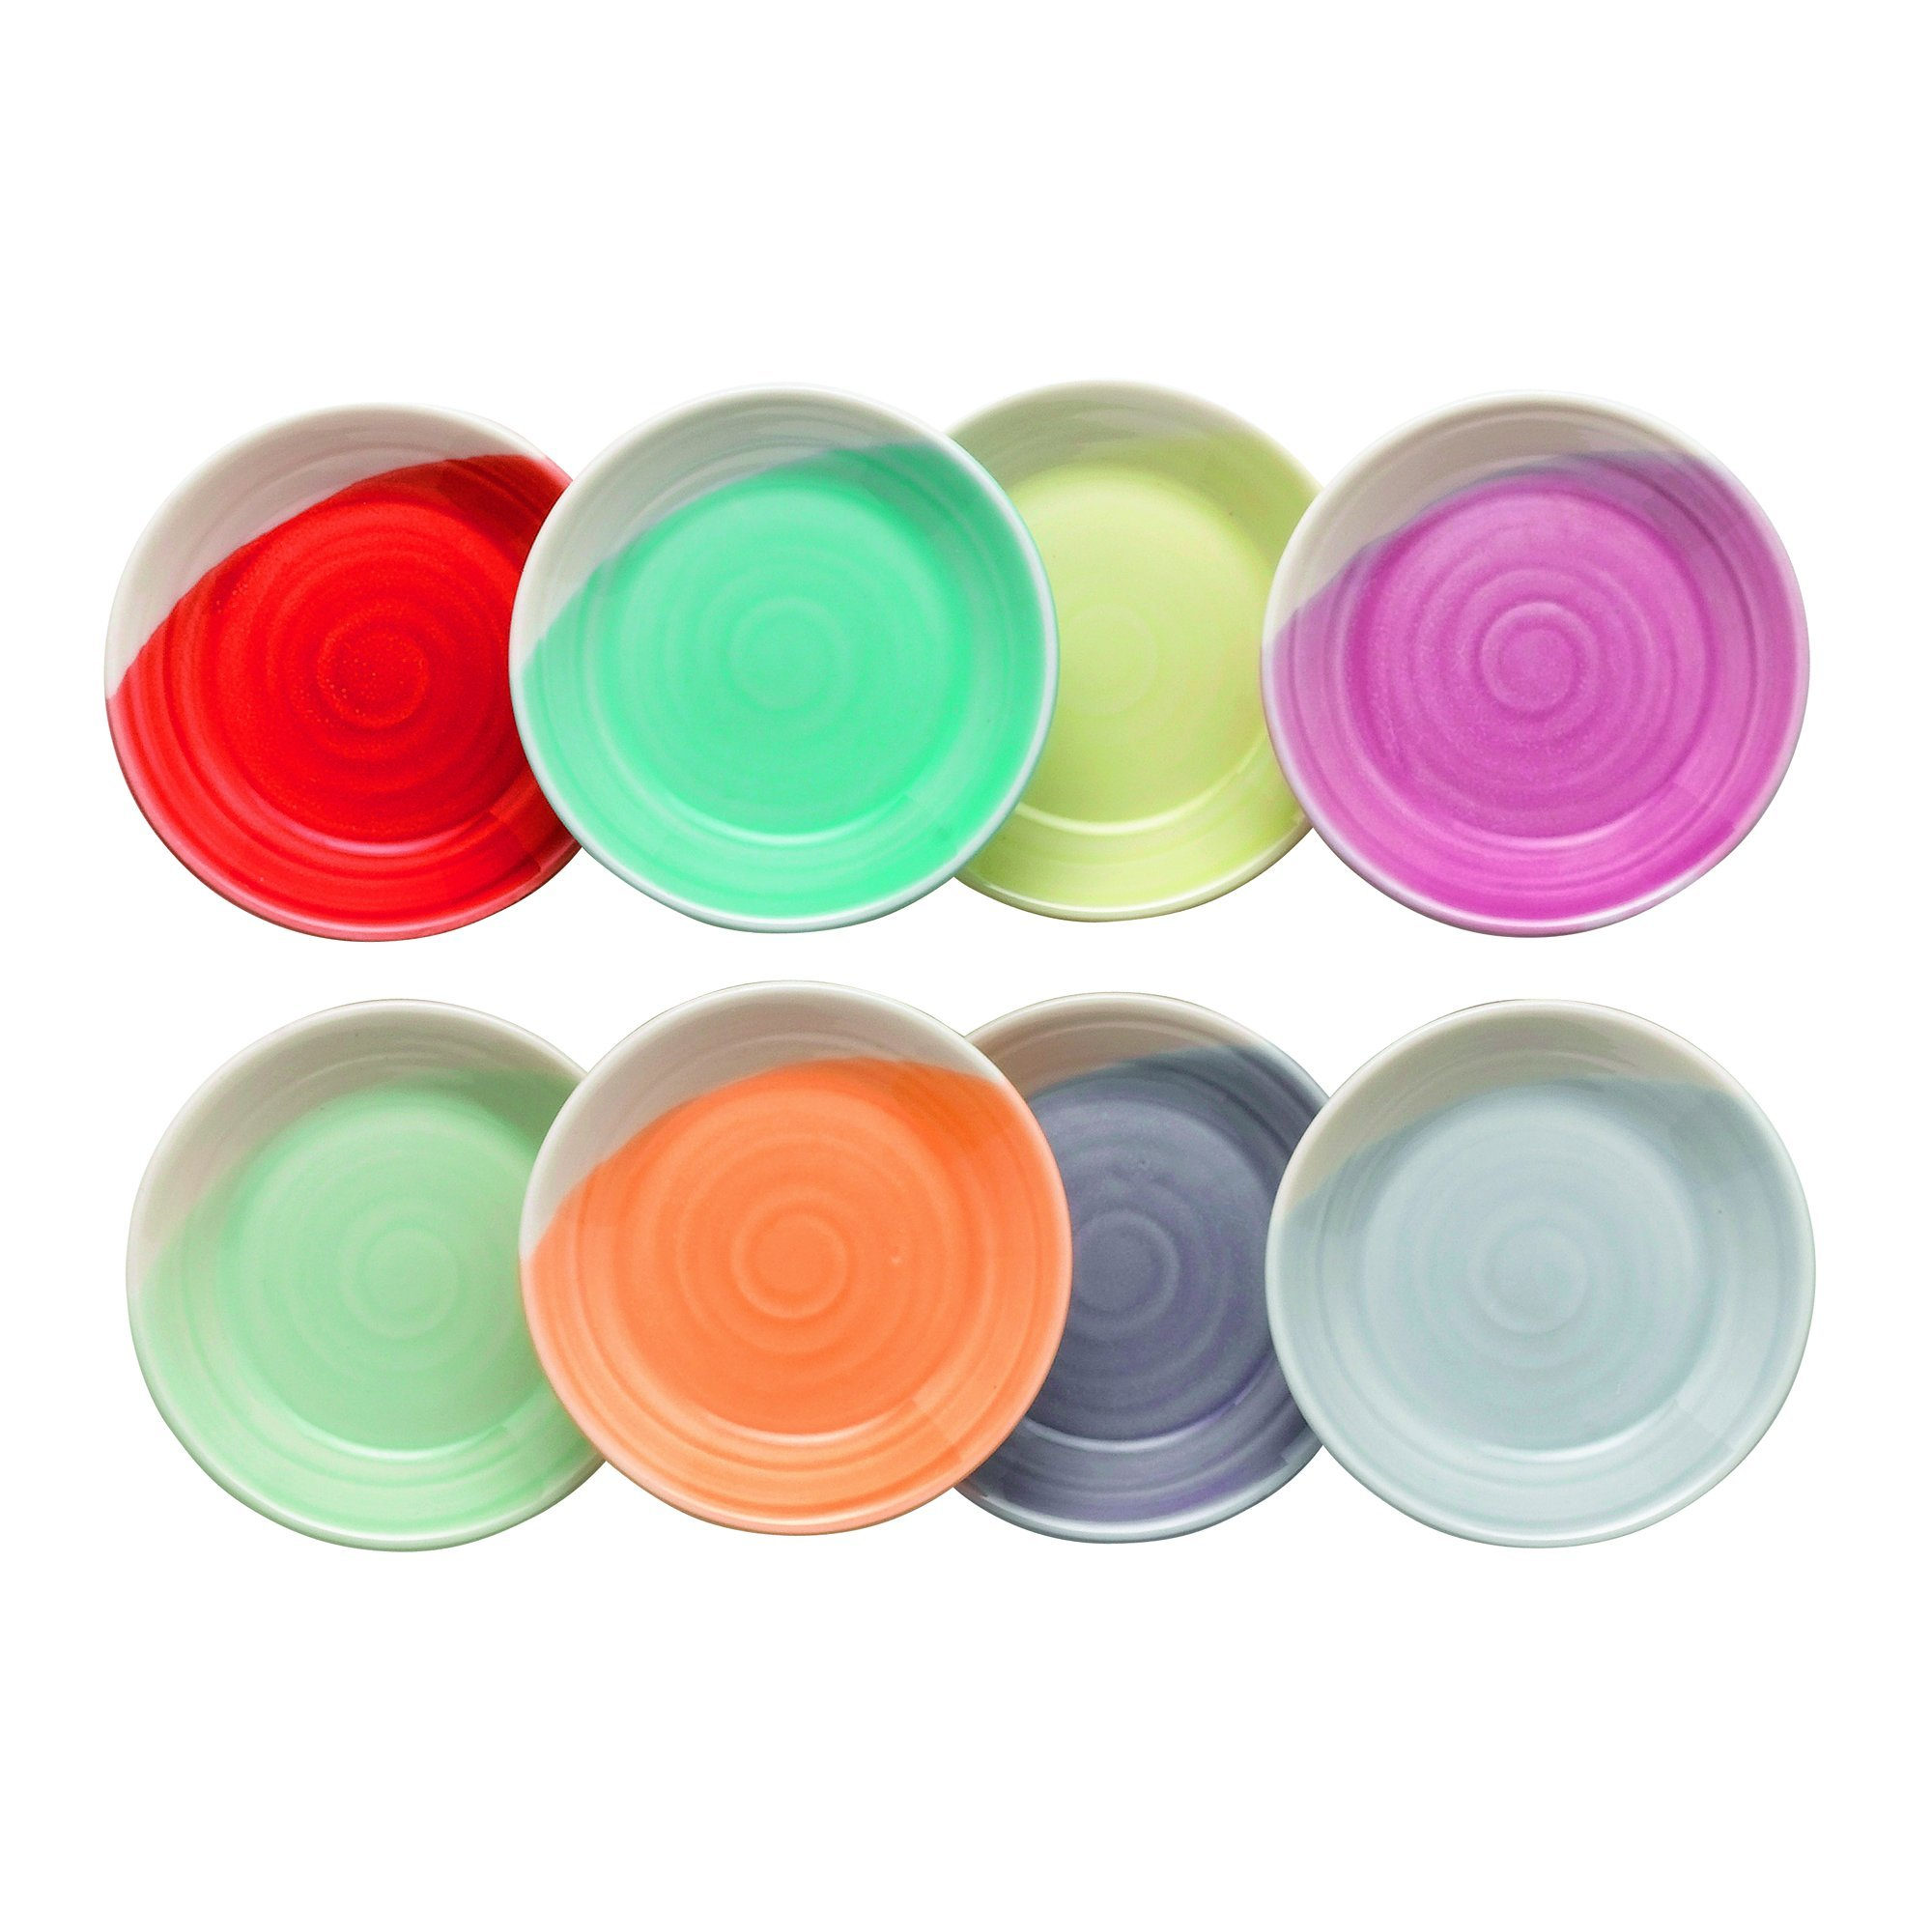 Royal Doulton 1815 Tapas Dip Tray, 3.5-Inch, Set of 8